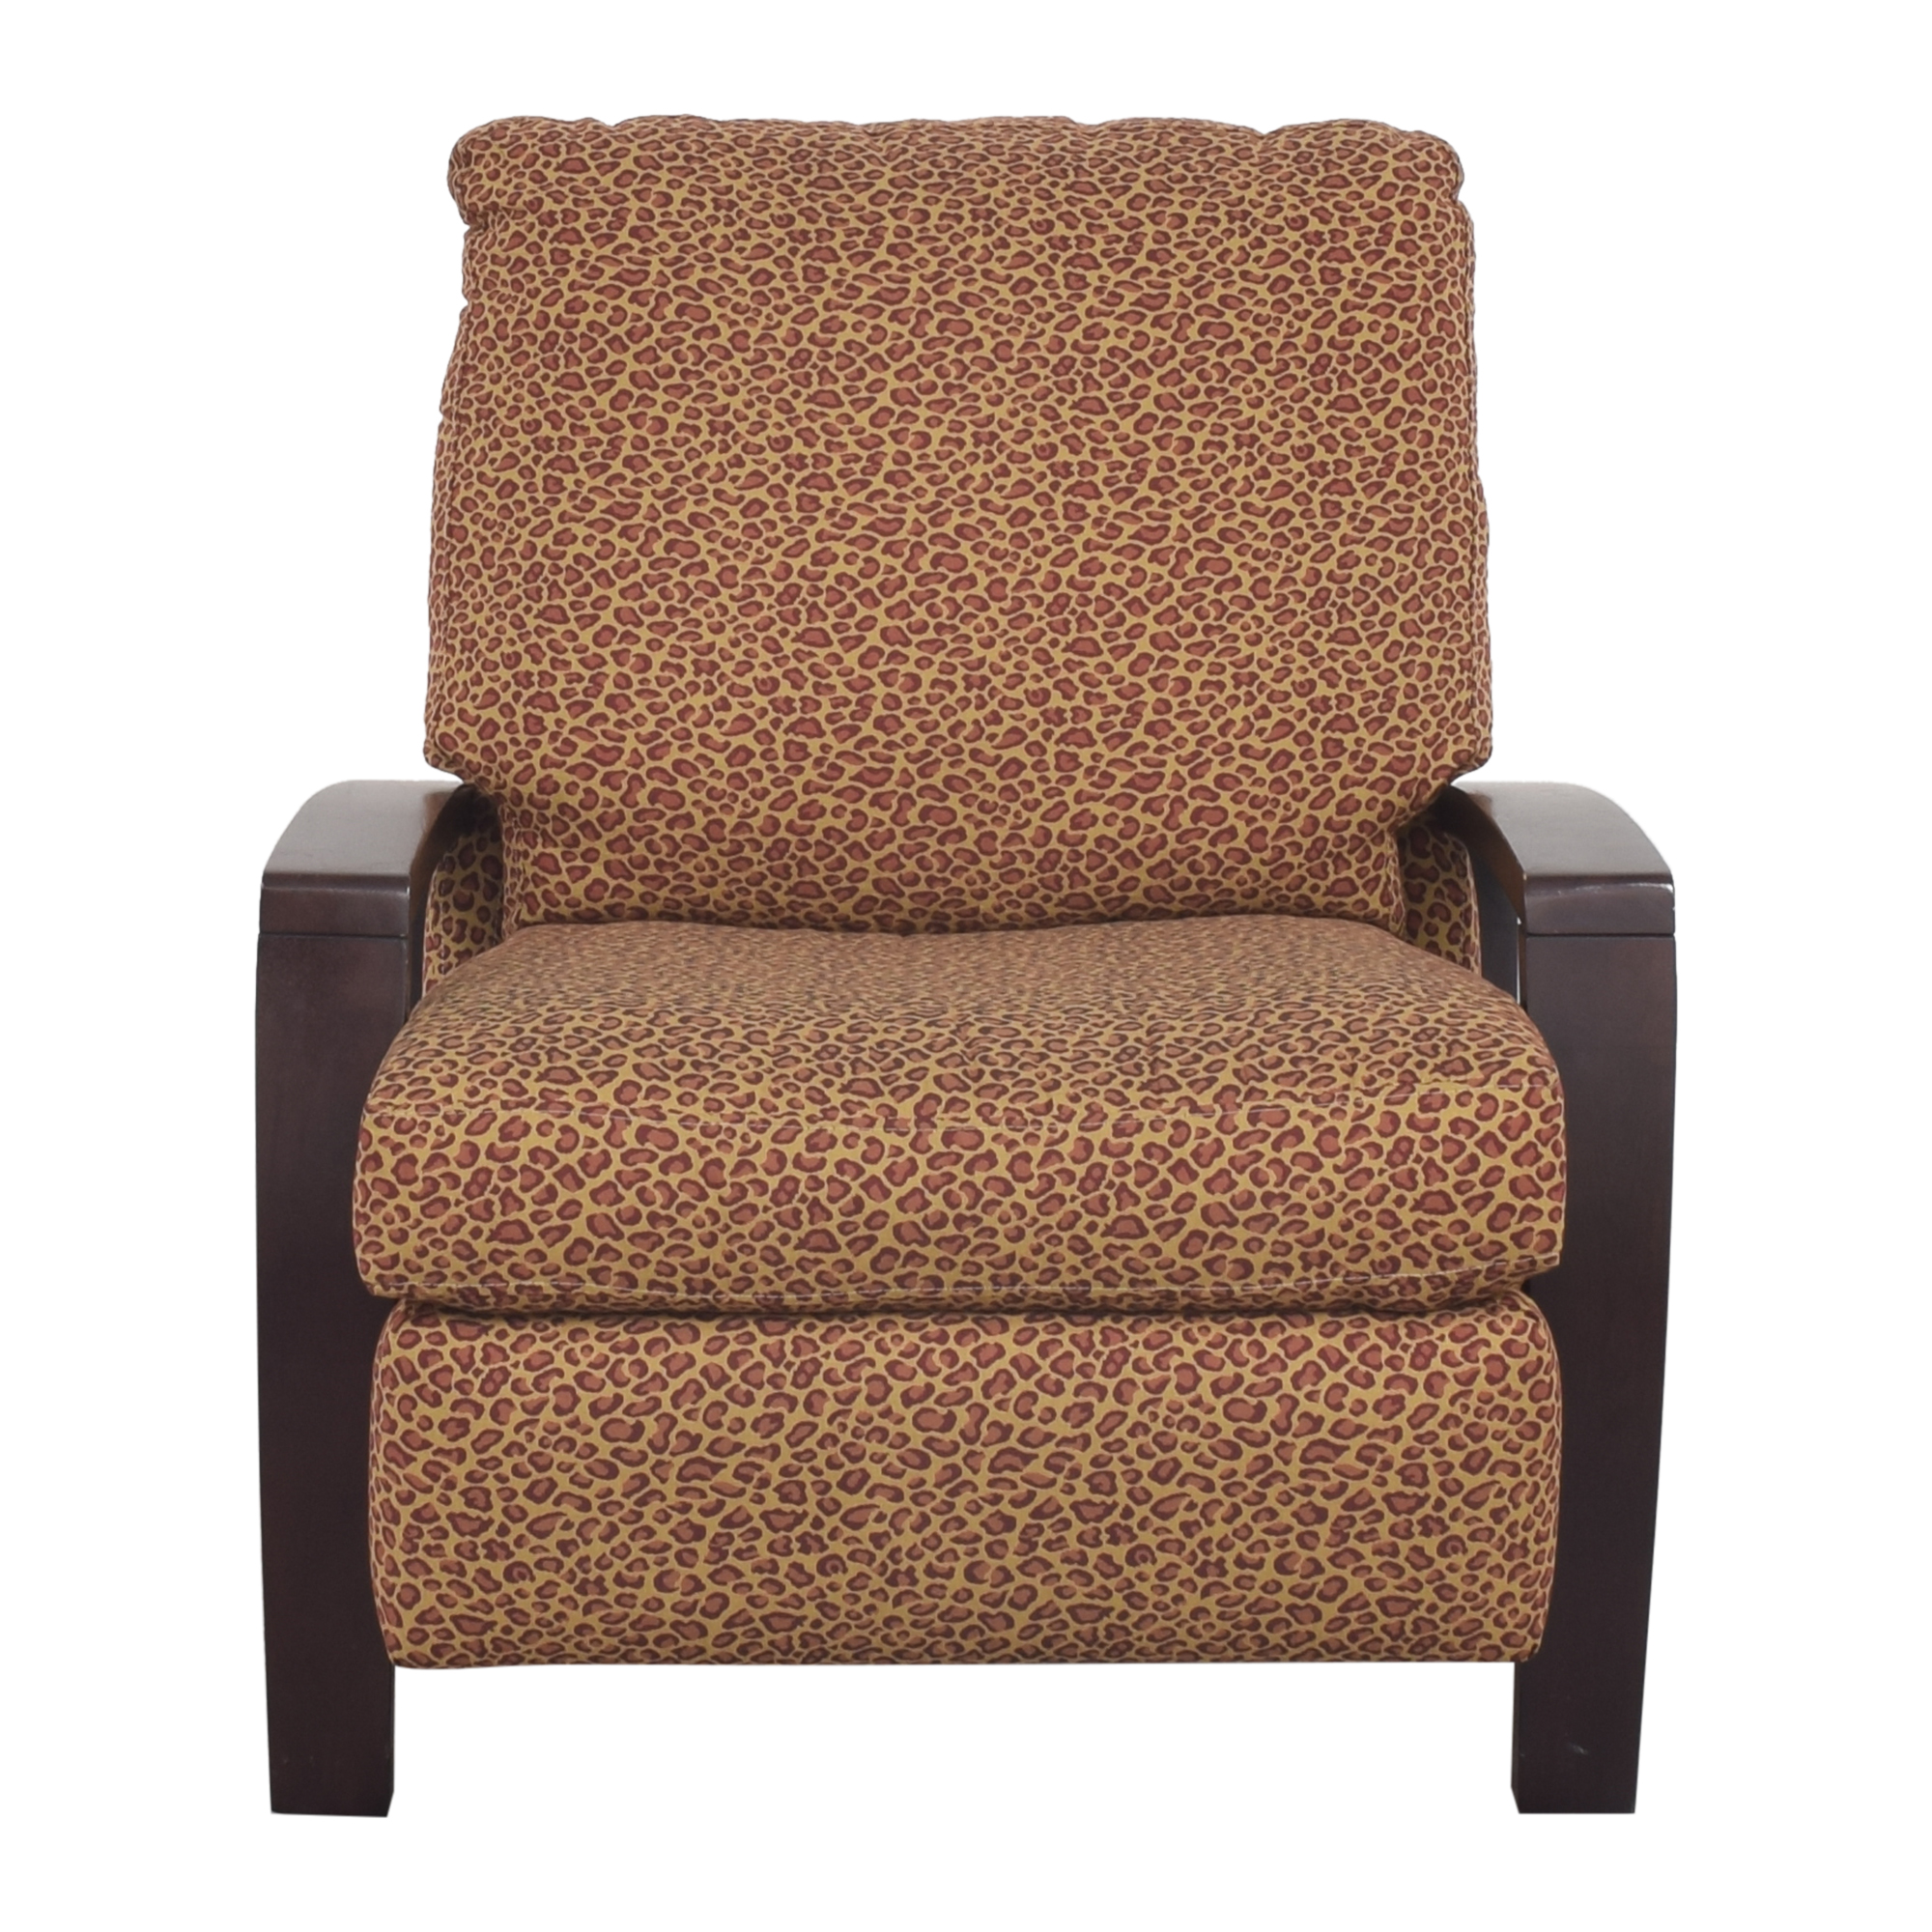 Klaussner Klaussner Recliner Arm Chair ma